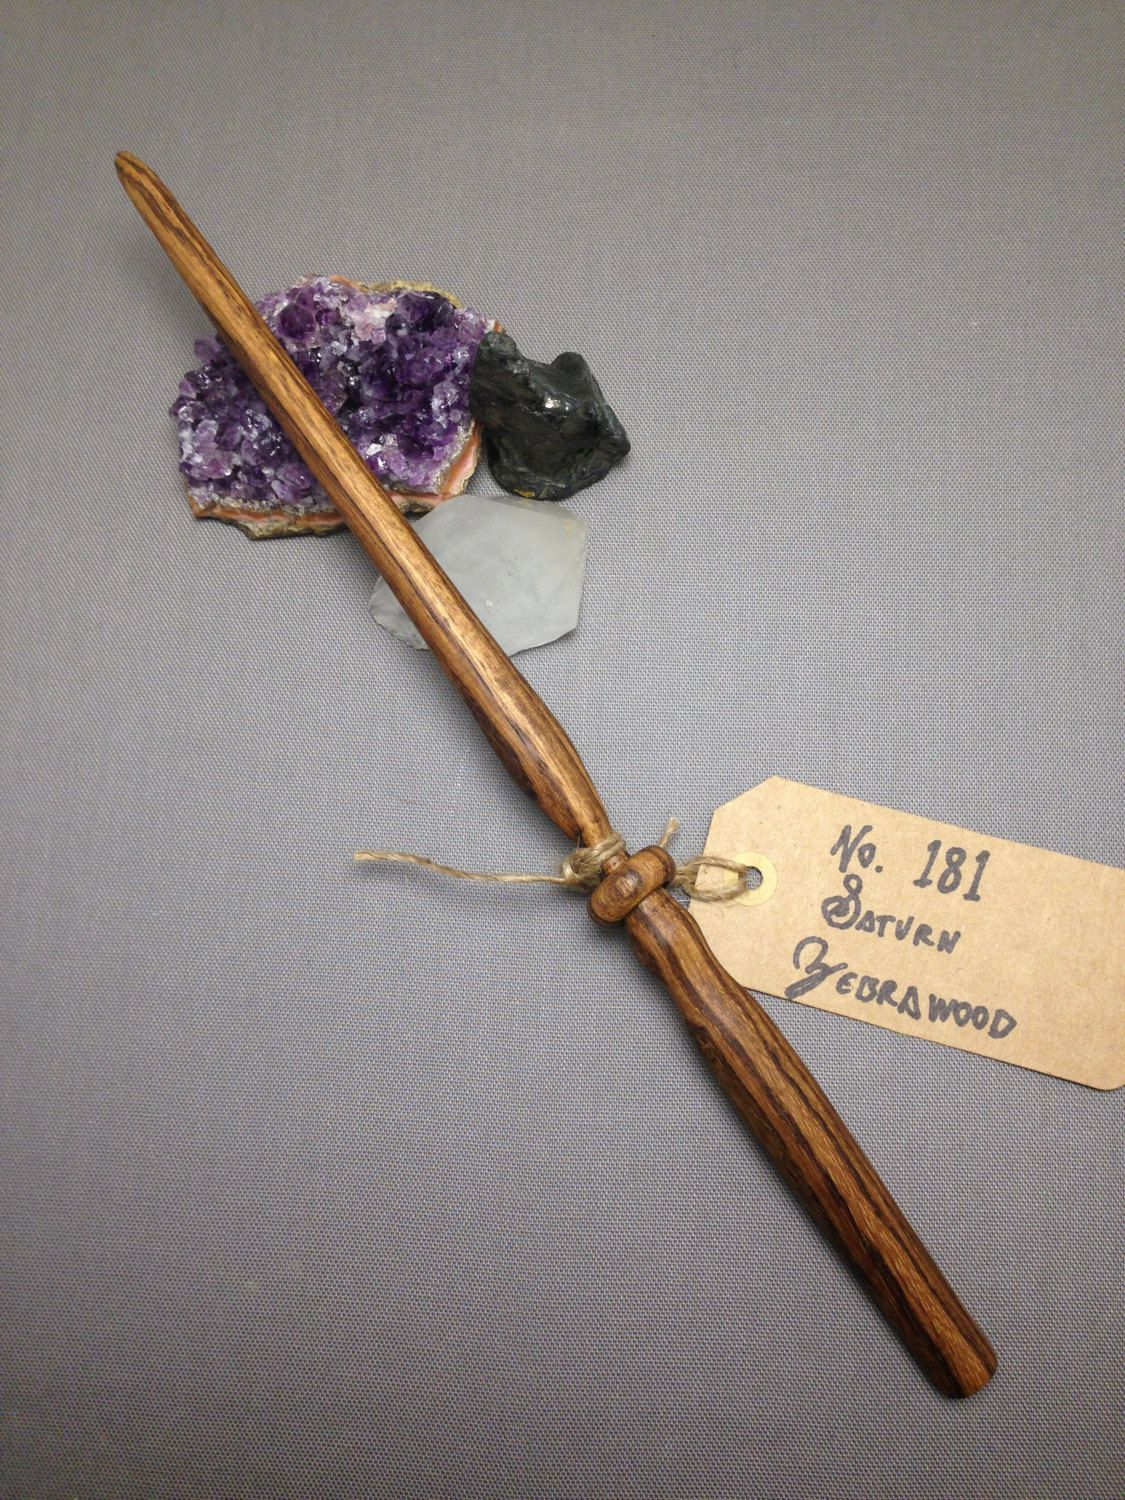 Wood Magic Wand No. 181 Saturn, Zebrawood Wizard Scepter Witch ...